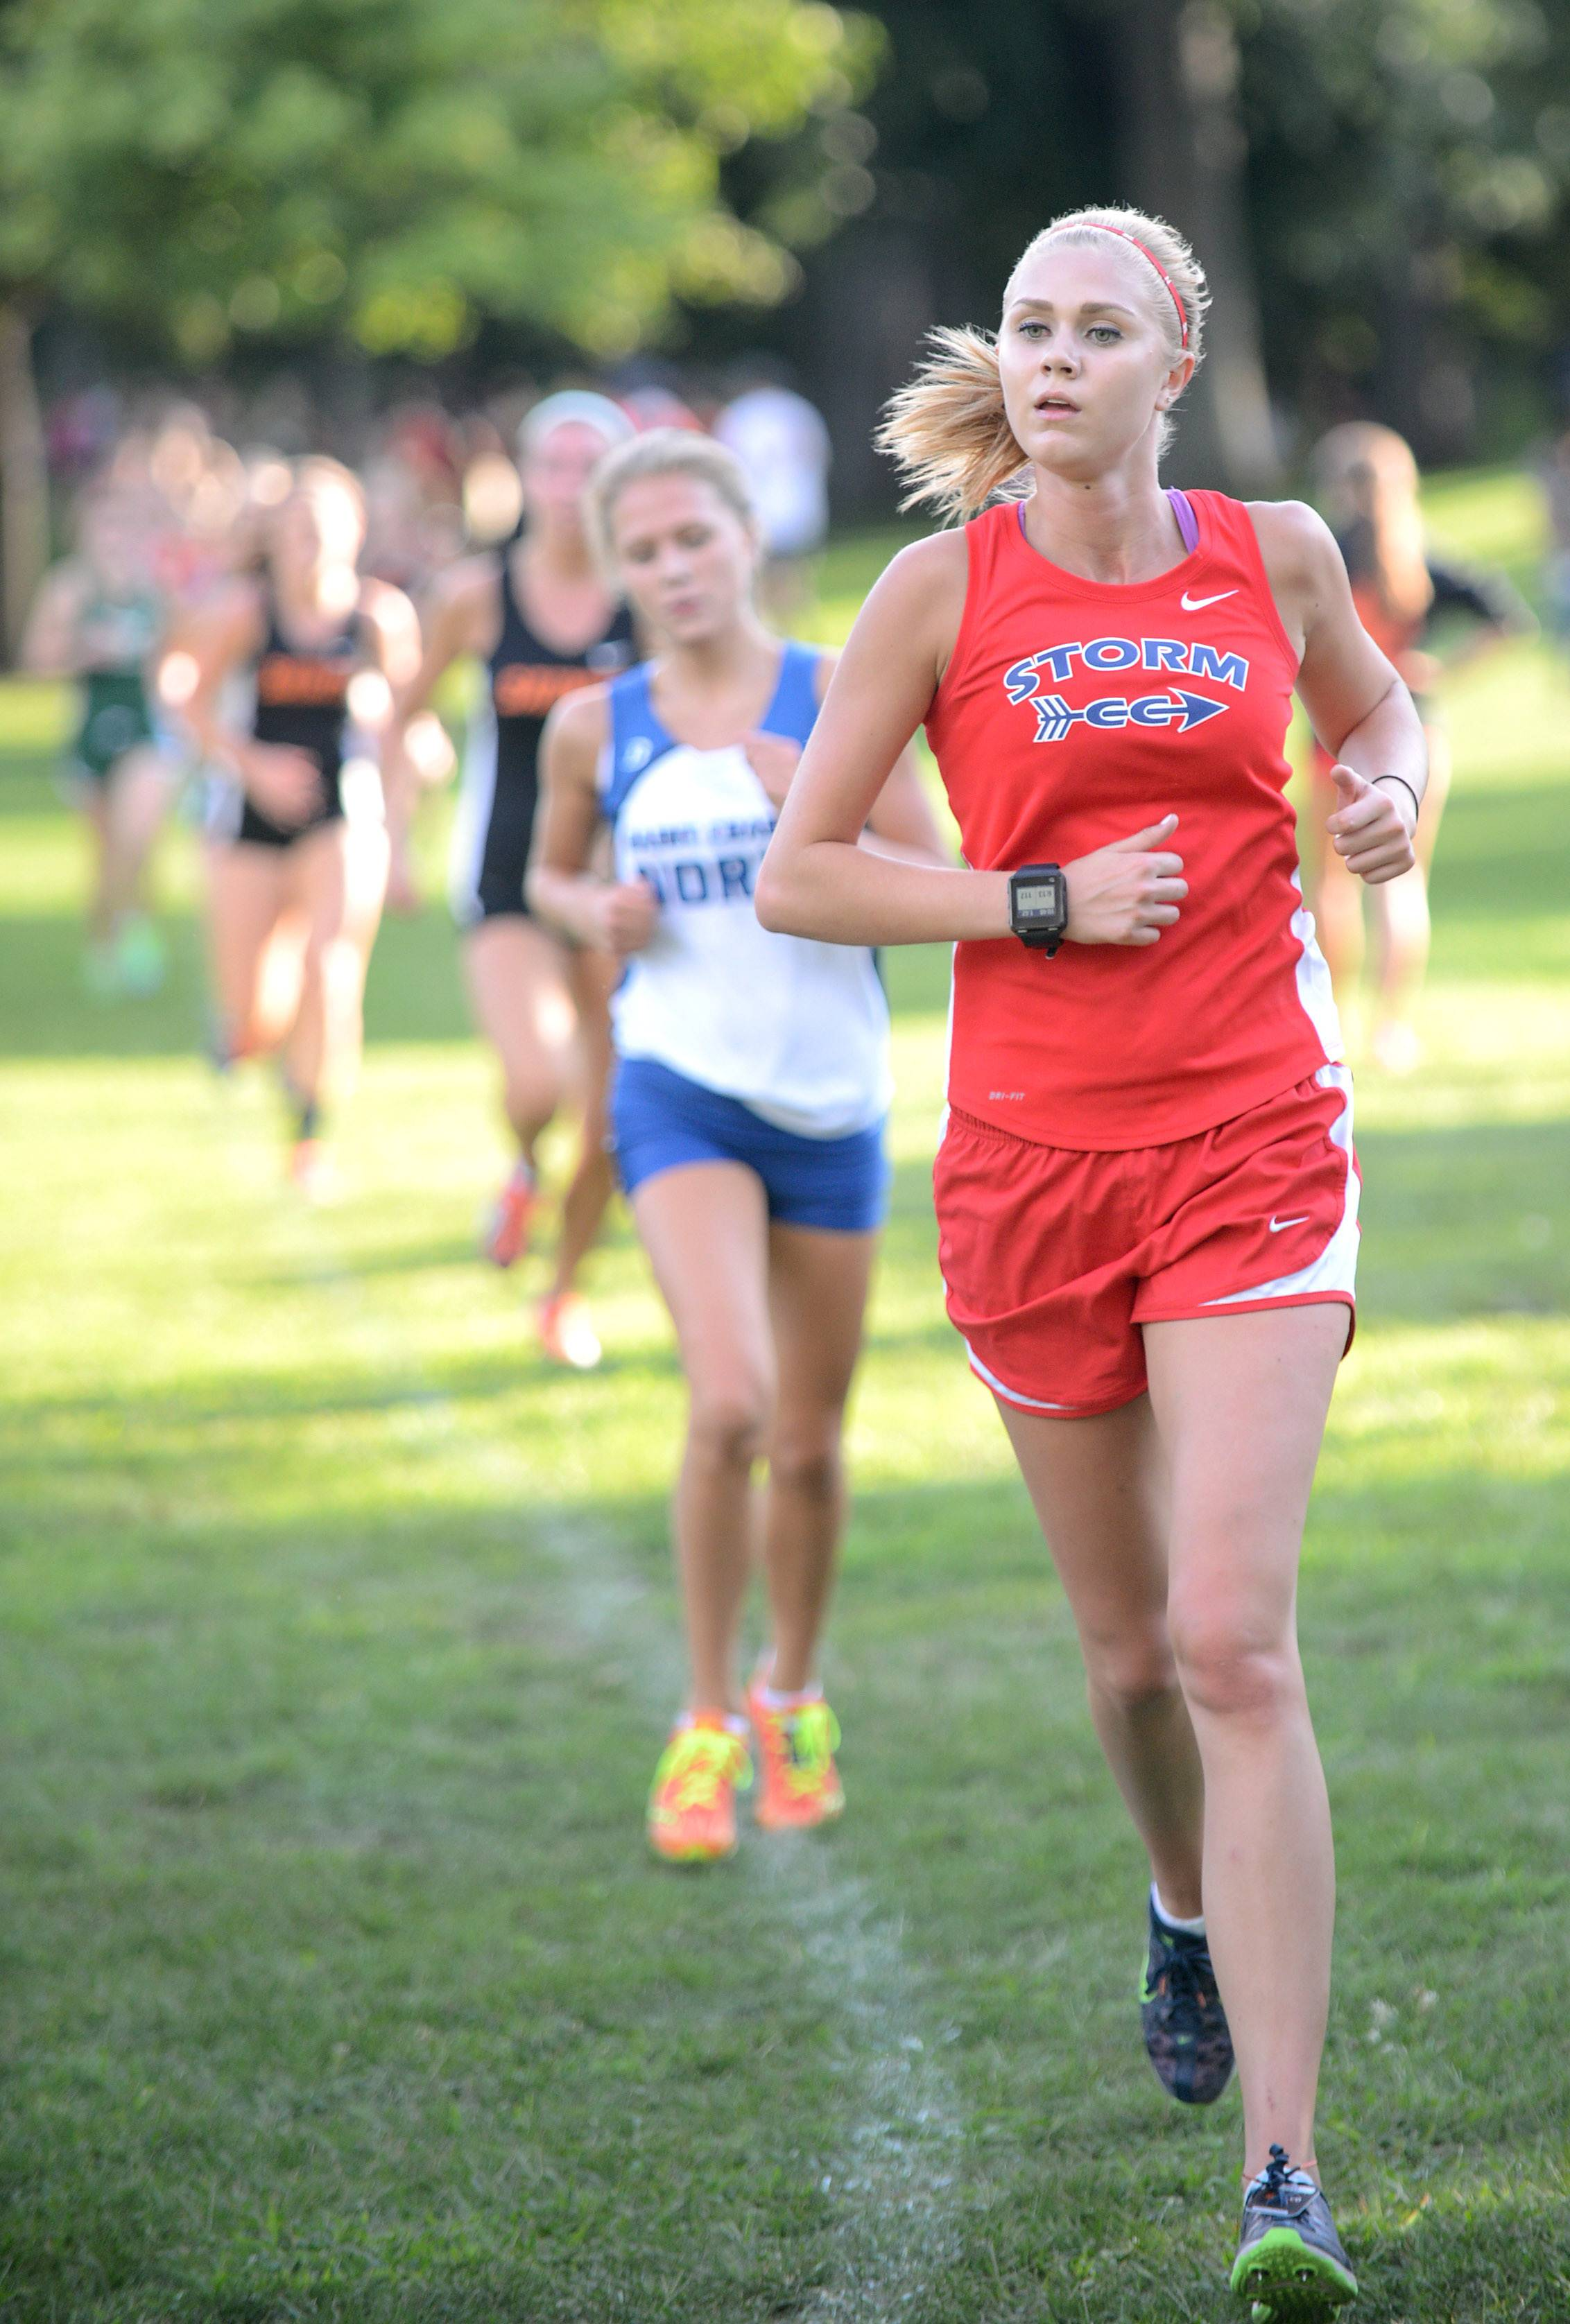 South Elgin's Sam Czuprynski competing at the Elgin Invite cross country meet at Lords Park in Elgin on Tuesday.